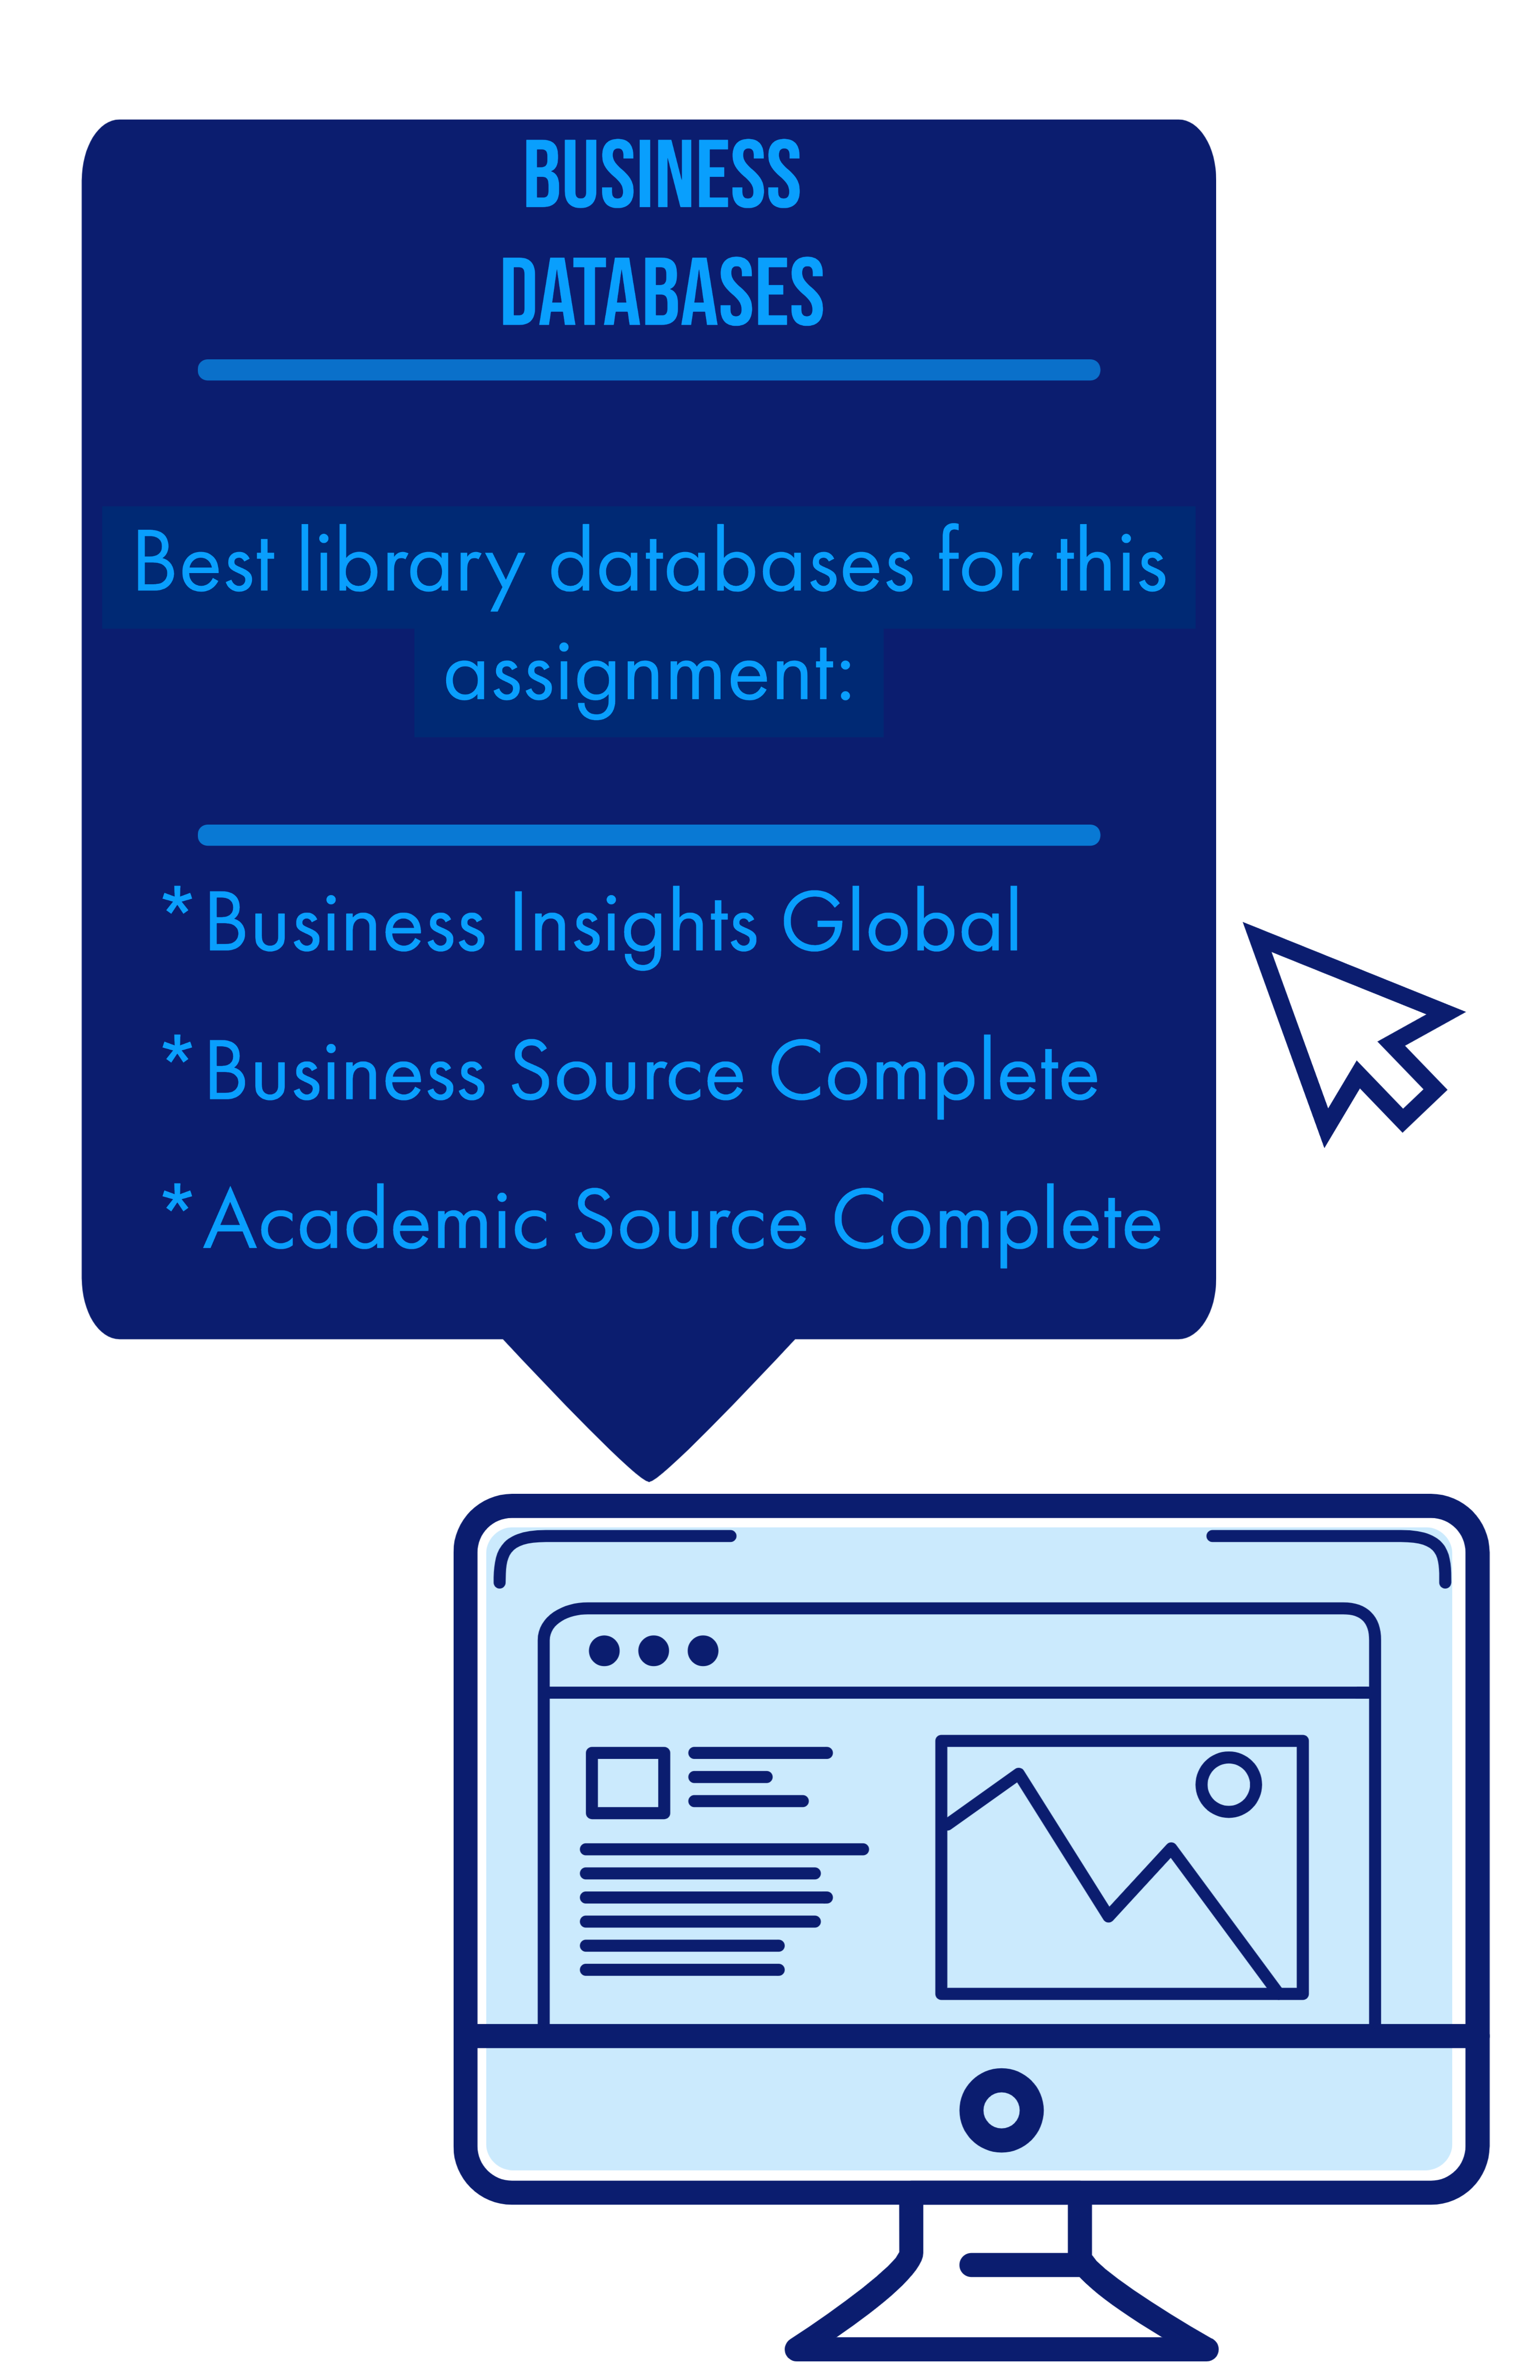 list of business databases